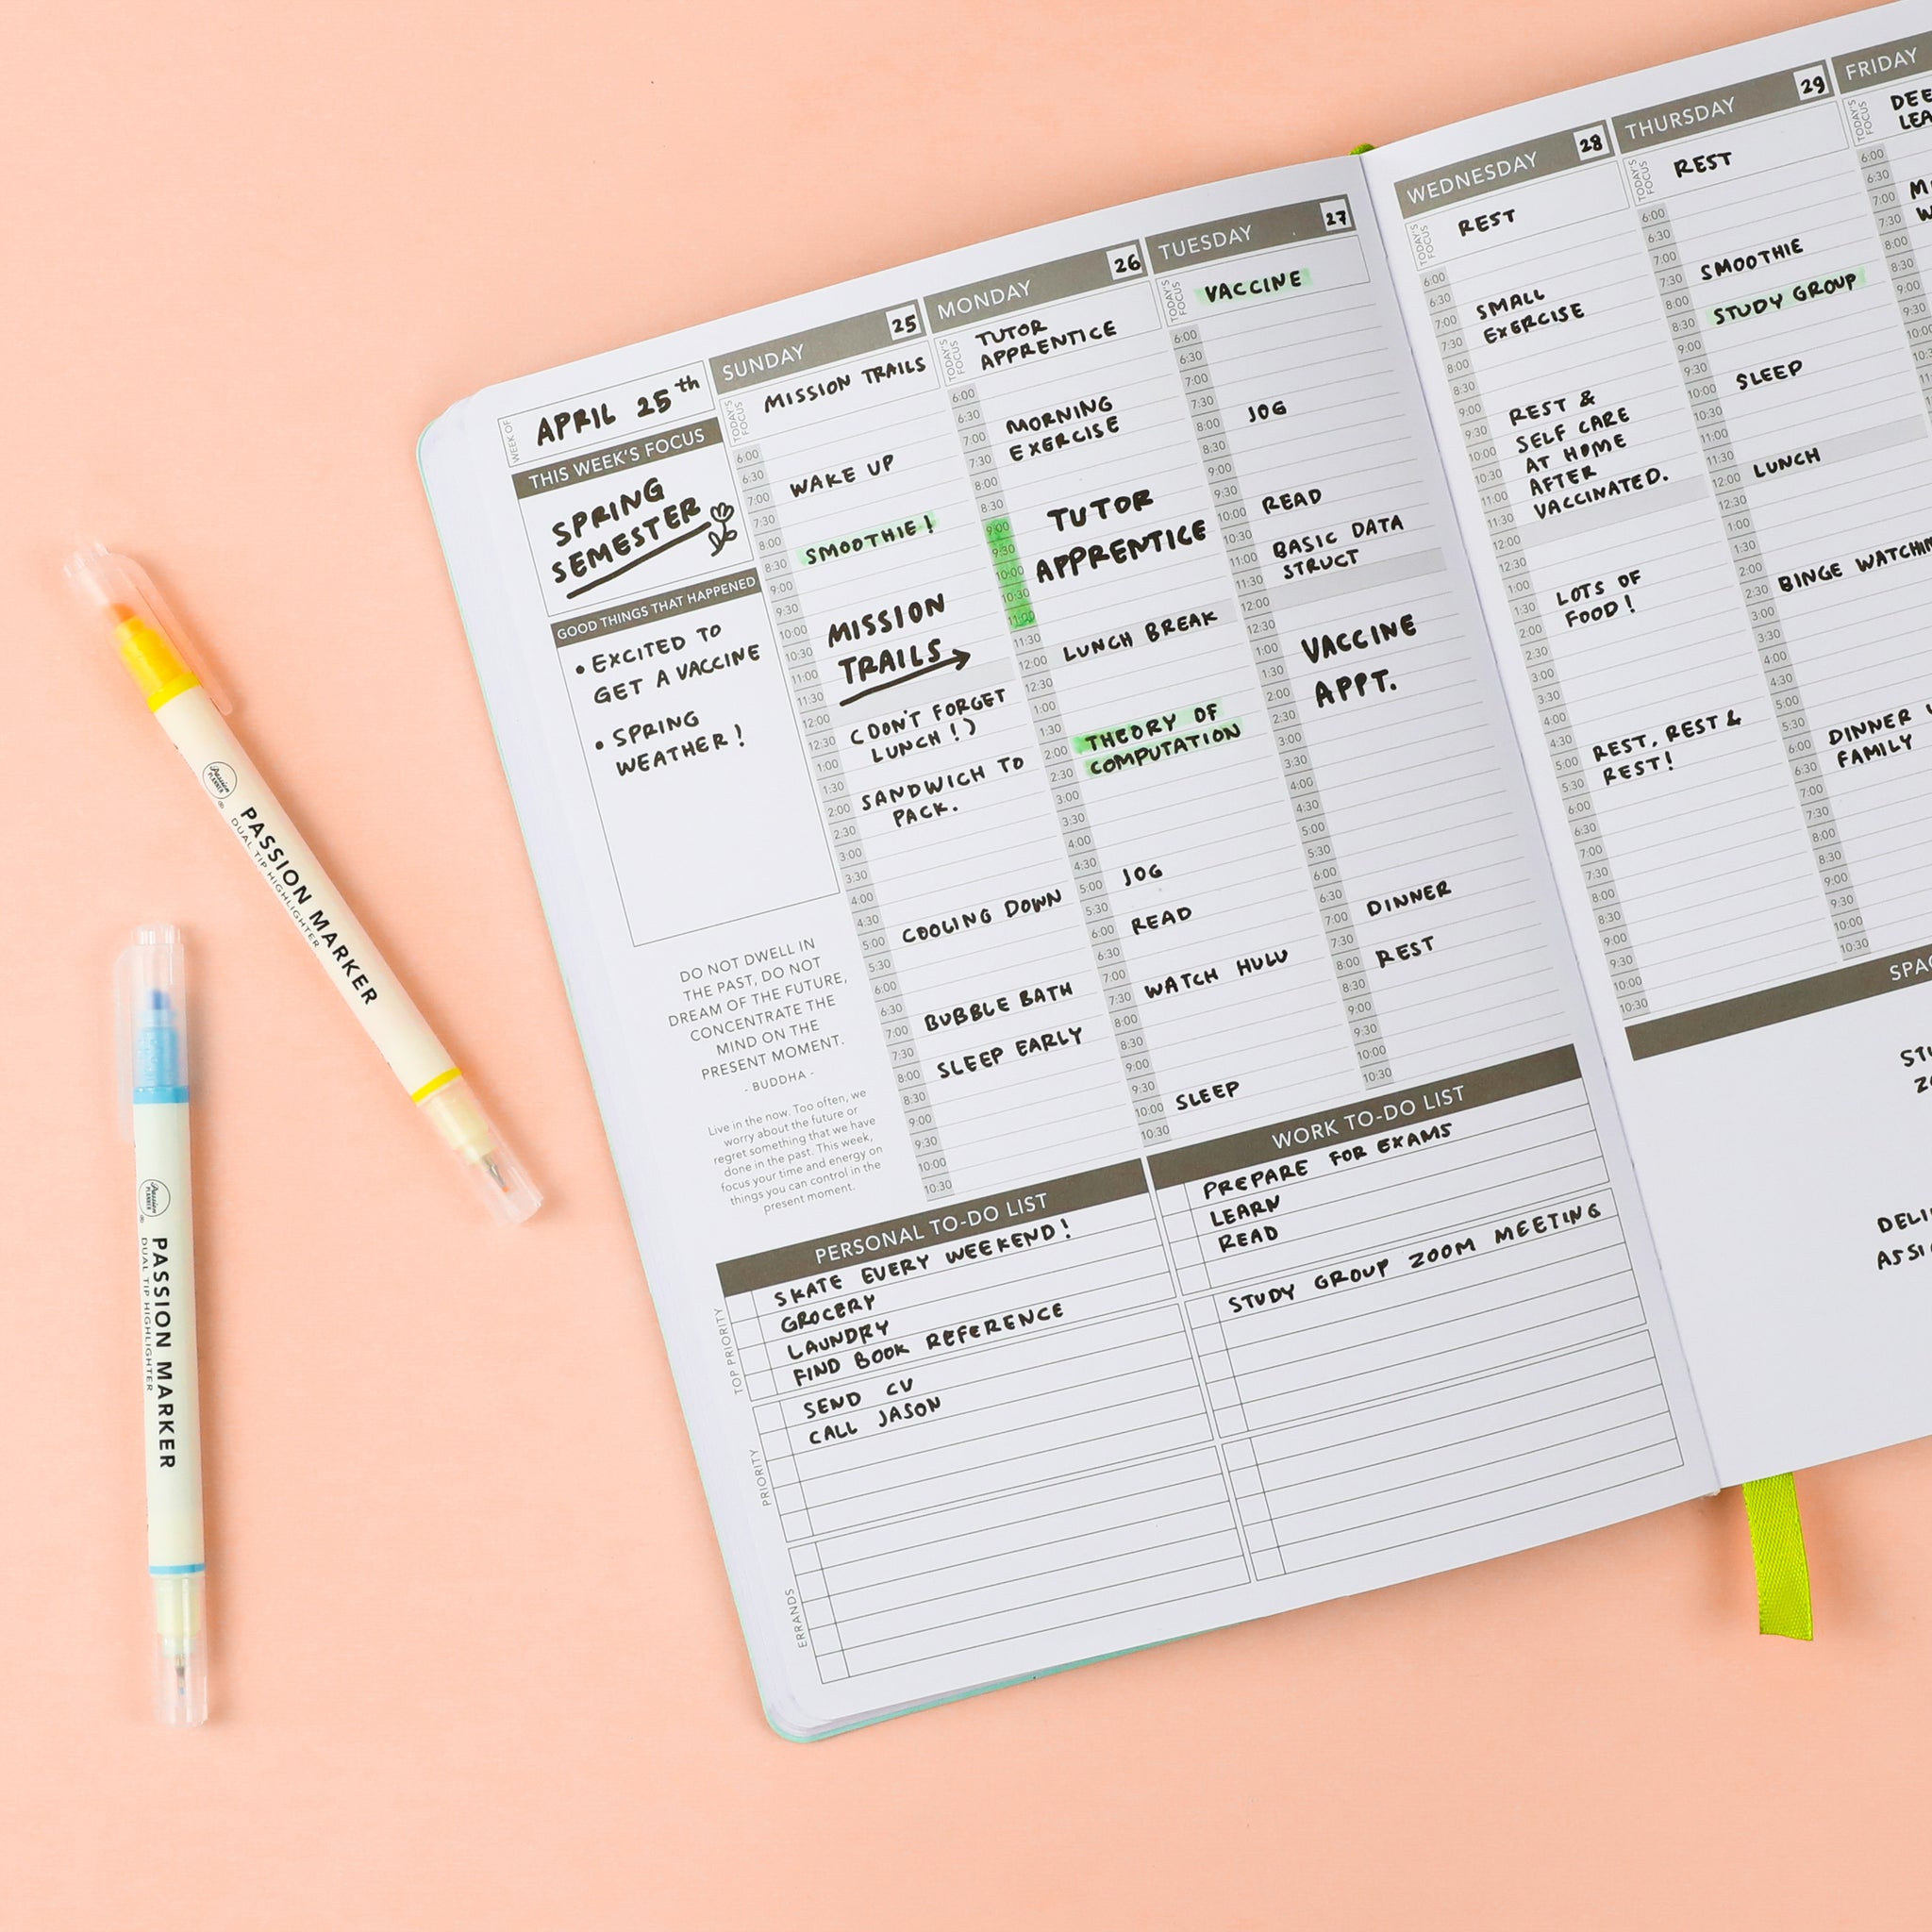 Undated Passion Planner Weekly layout and Passion Markers. Write down your schedule in the vertical appointment slots, note your tasks in the personal and work to do lists, and identify your focuses for the week and month.